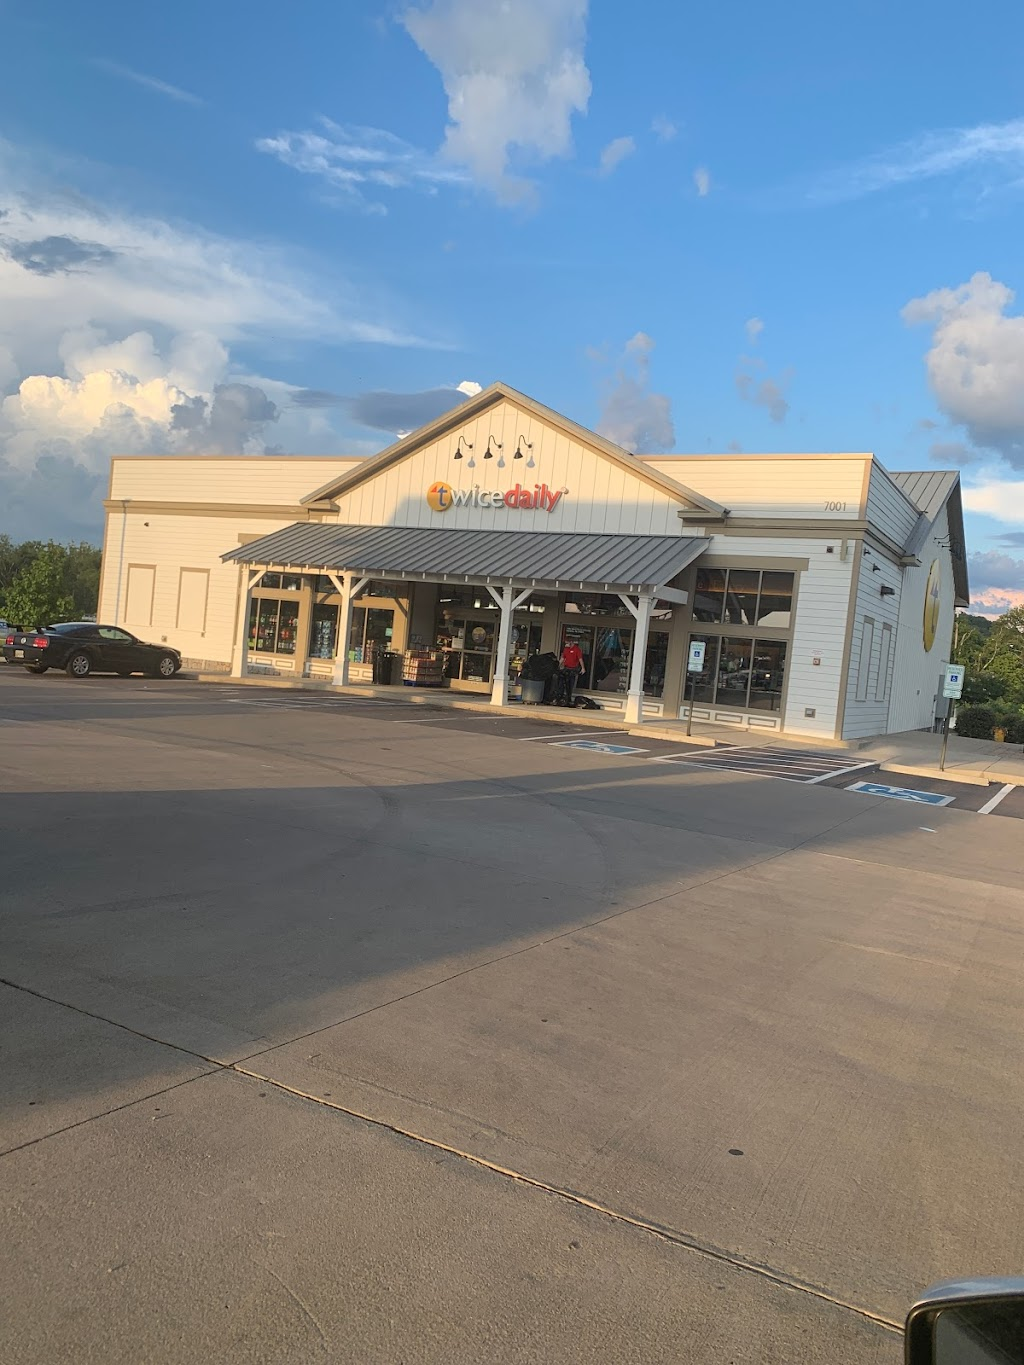 Twice Daily - convenience store  | Photo 9 of 10 | Address: 7001 Berry Farms Crossing, Franklin, TN 37064, USA | Phone: (615) 462-7060